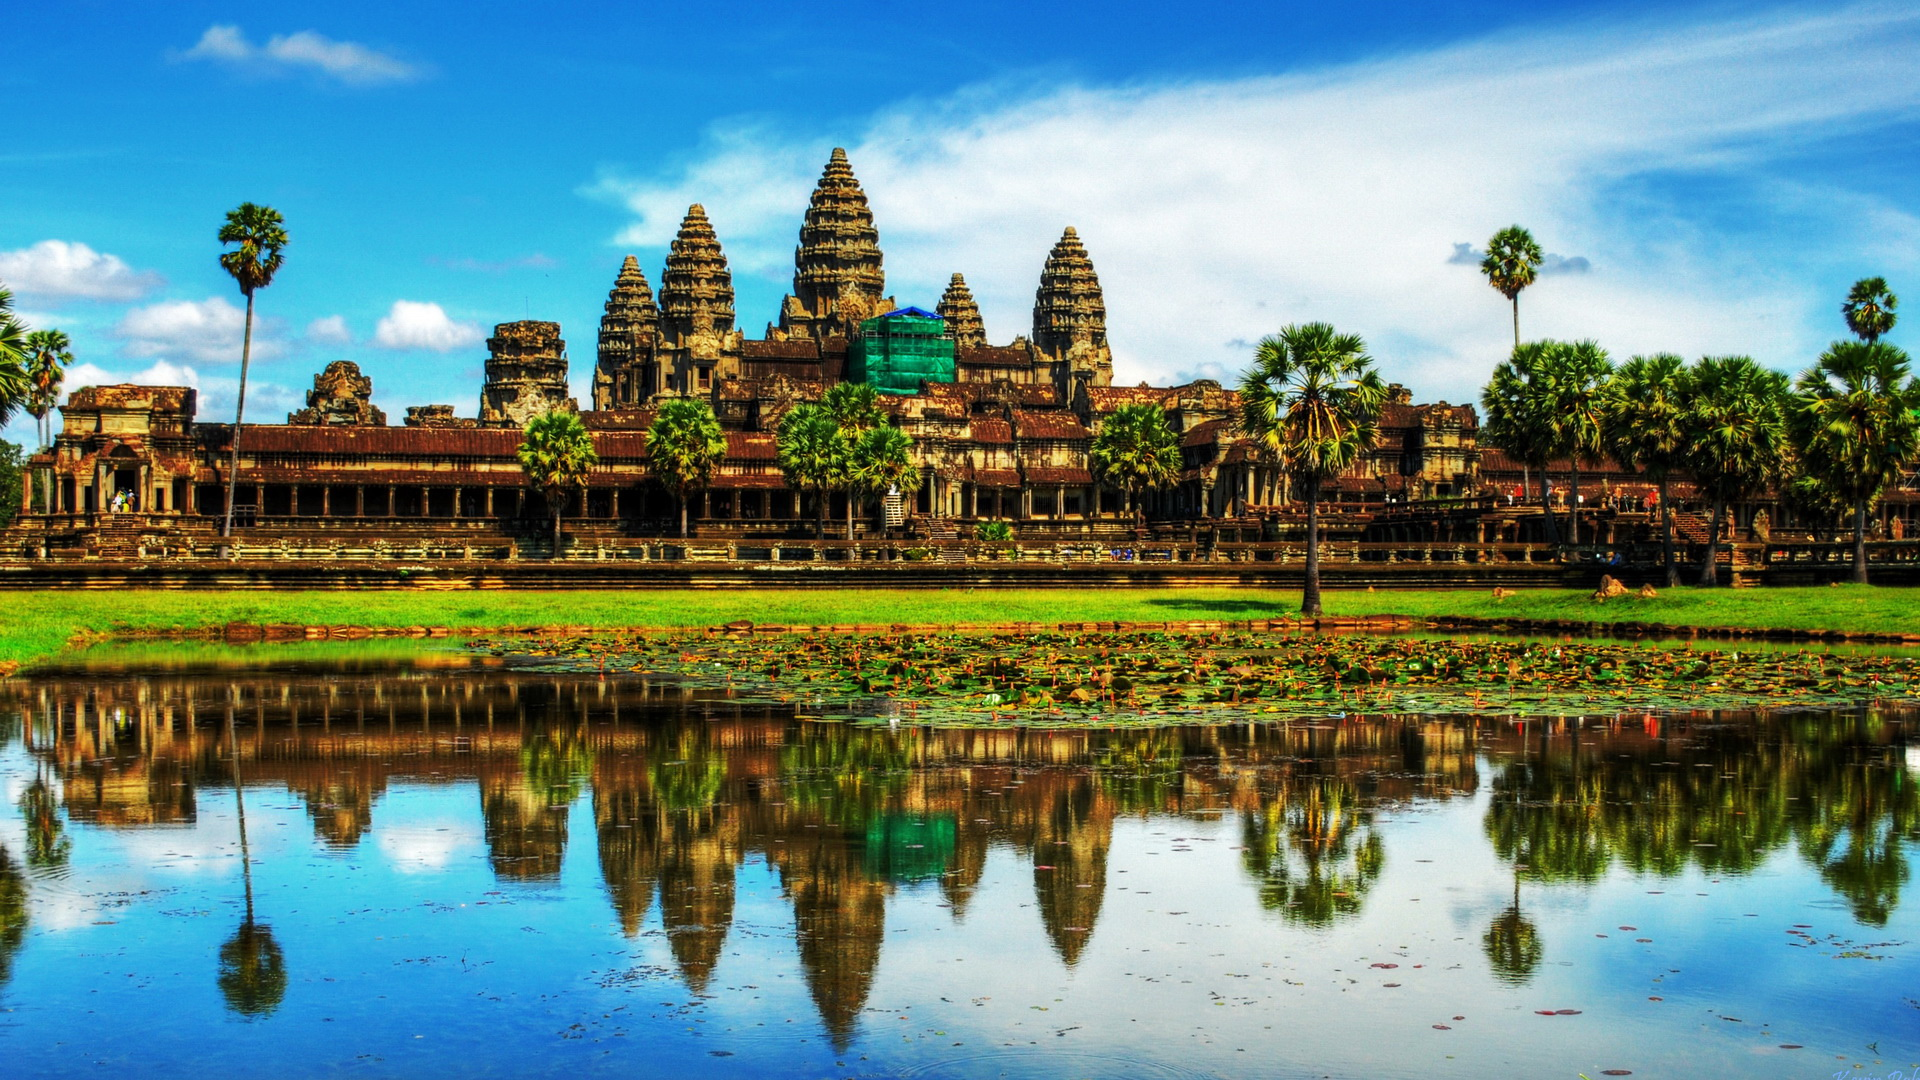 Angkor-Wat Temple in Thailand